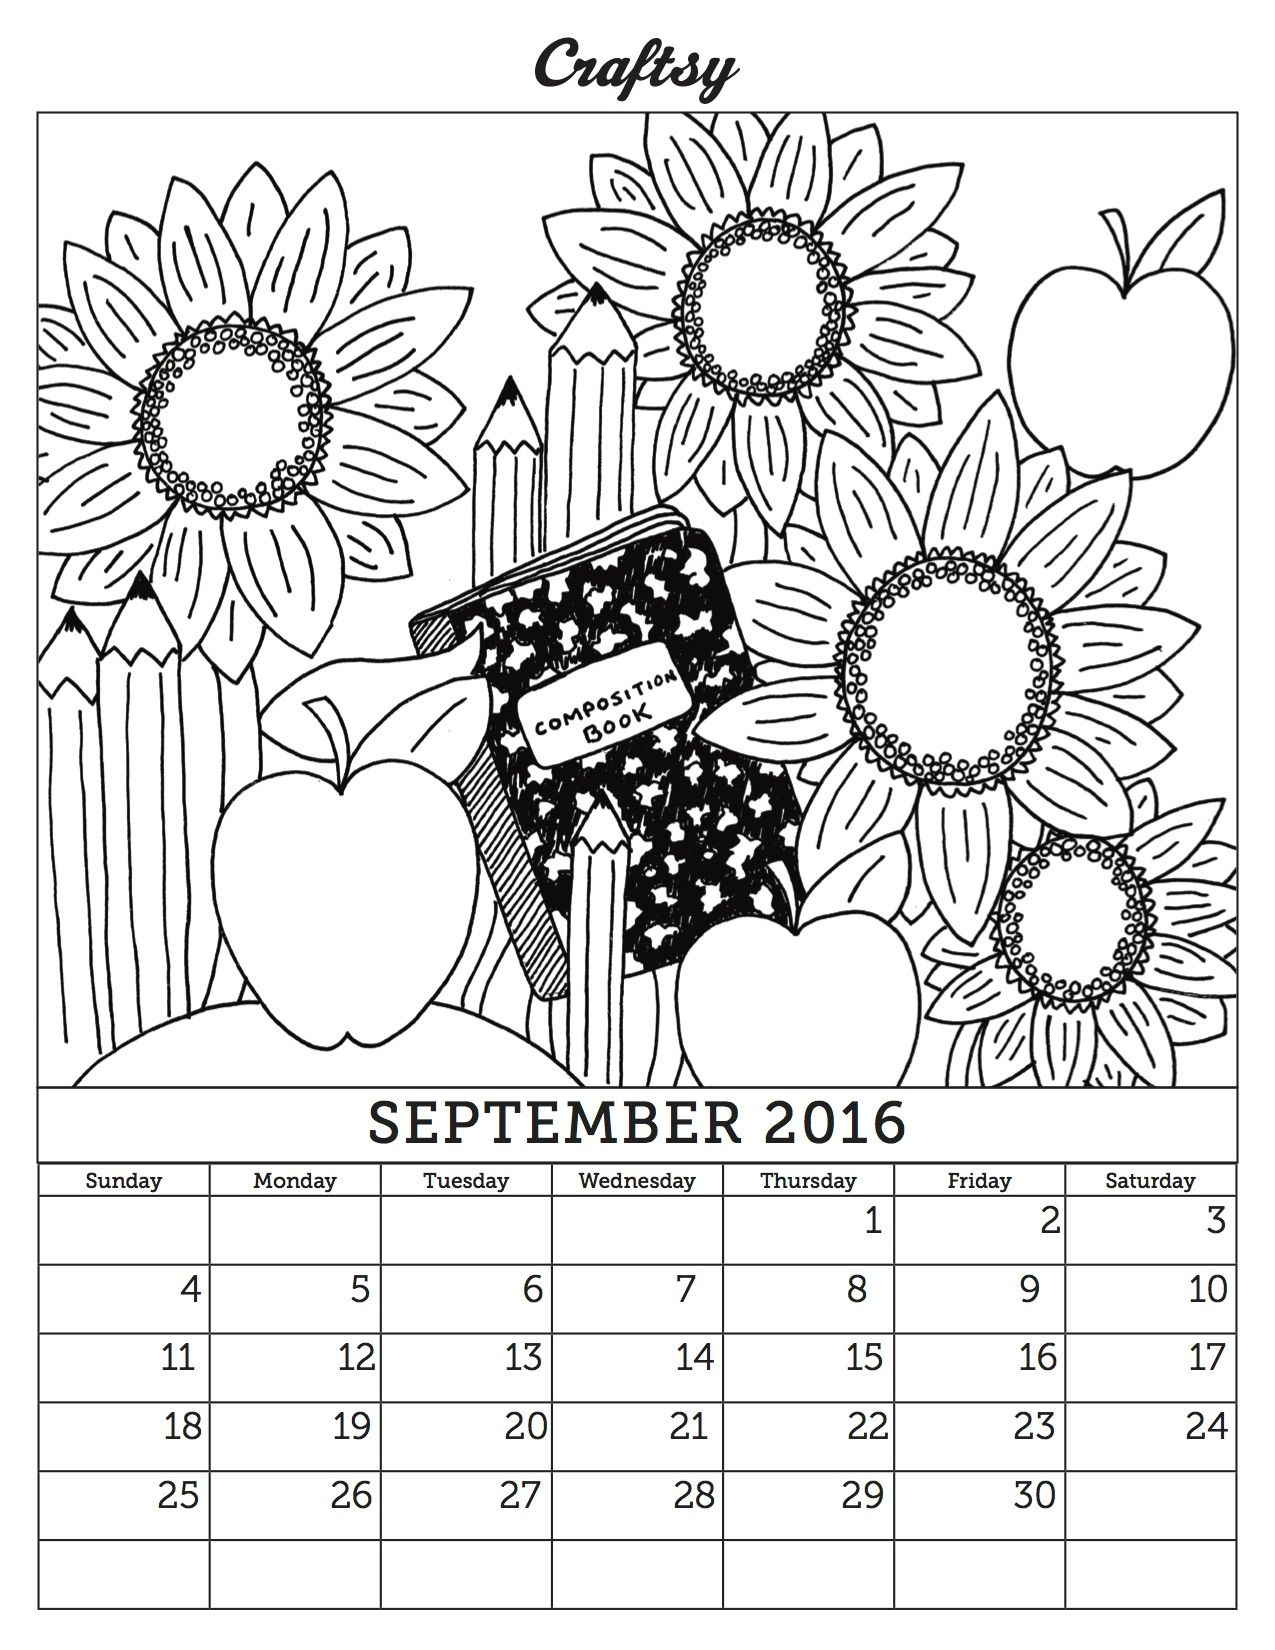 N September Our Latest Coloring Book Calendar Page Available As A